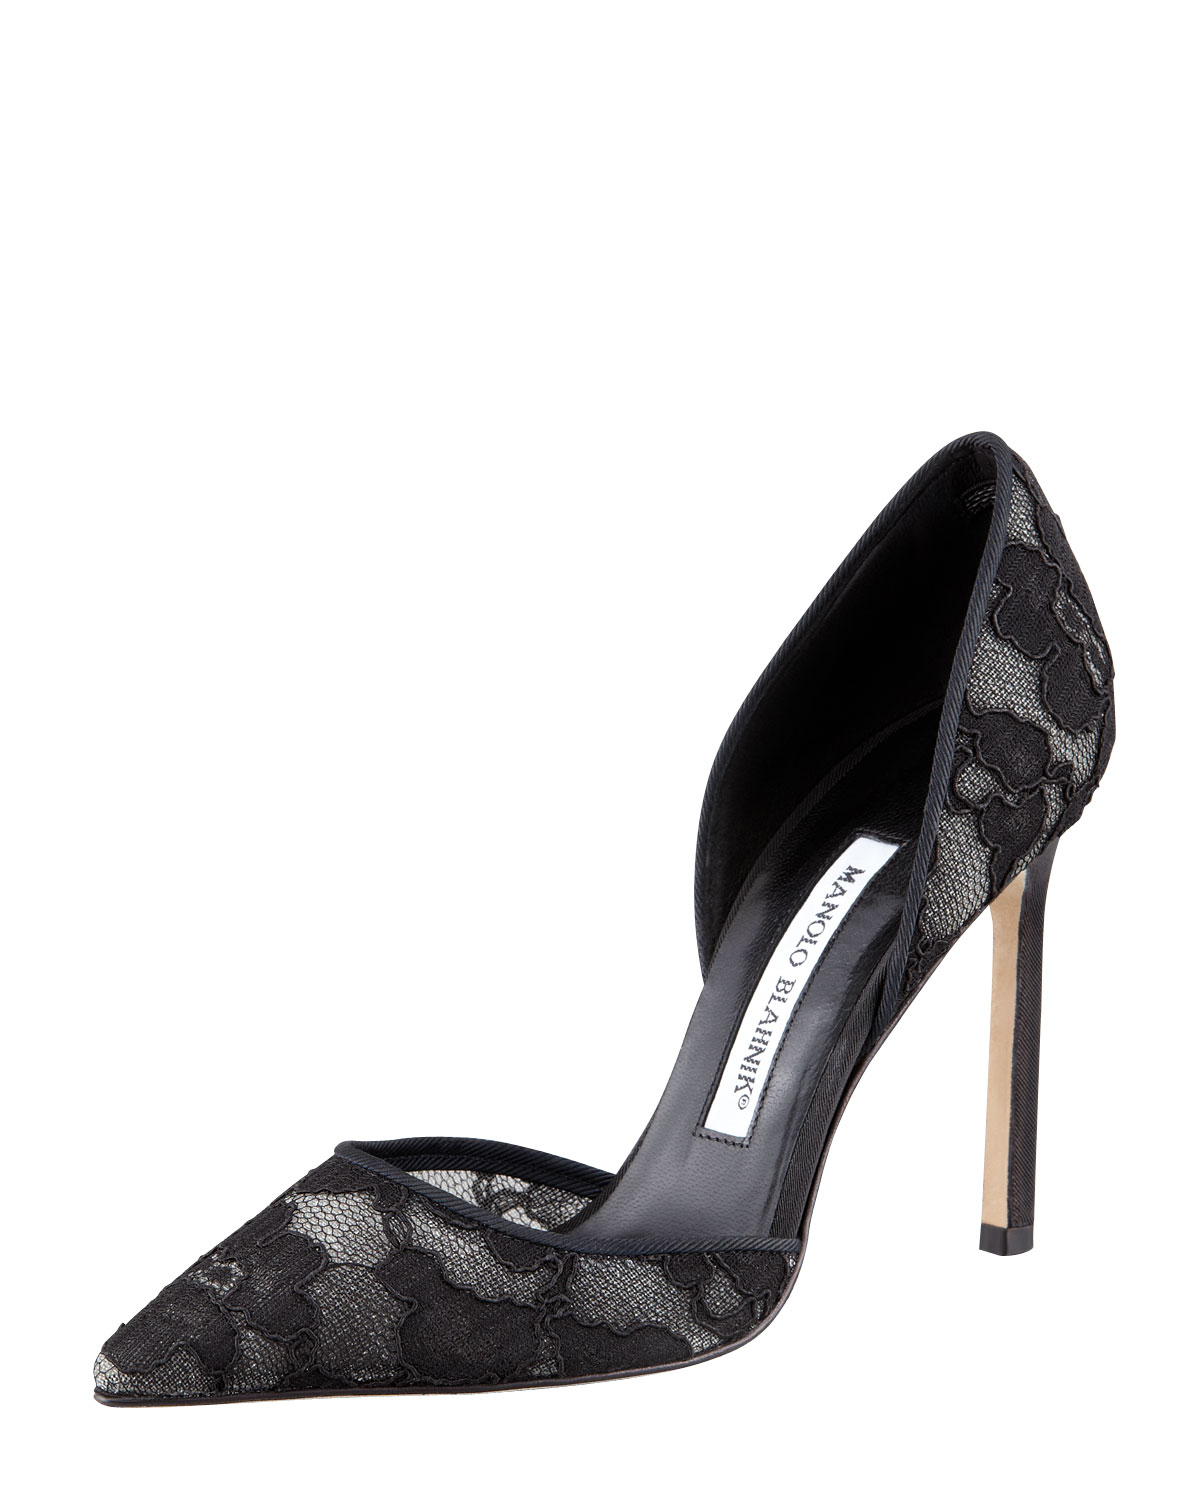 Lyst manolo blahnik tayler lace pointed dorsay pump blac for Who is manolo blahnik